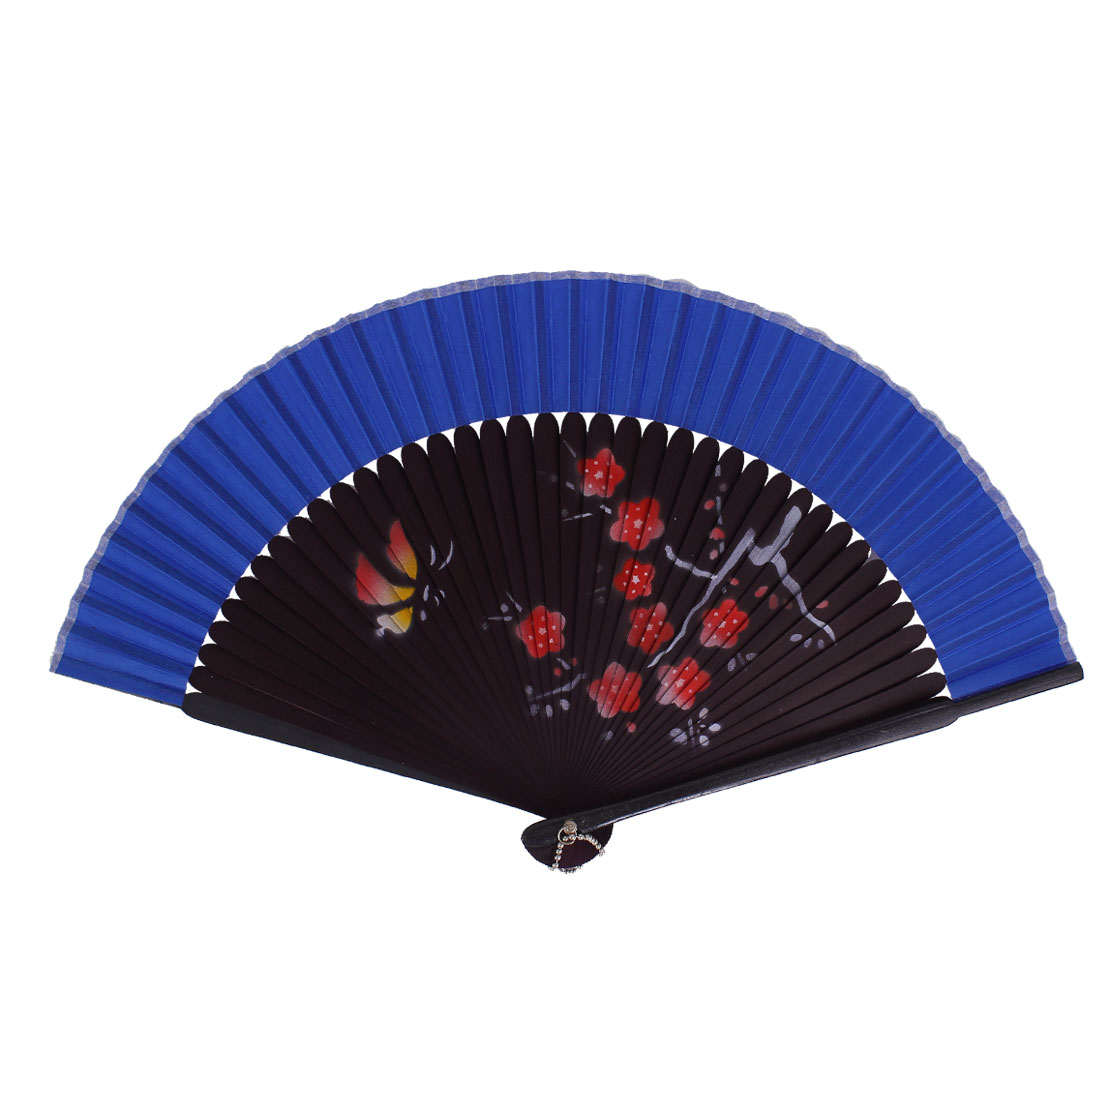 Chinese Style Blooming Flower Print Wood Handheld Folding Hand Fan Blue Eggplant Color